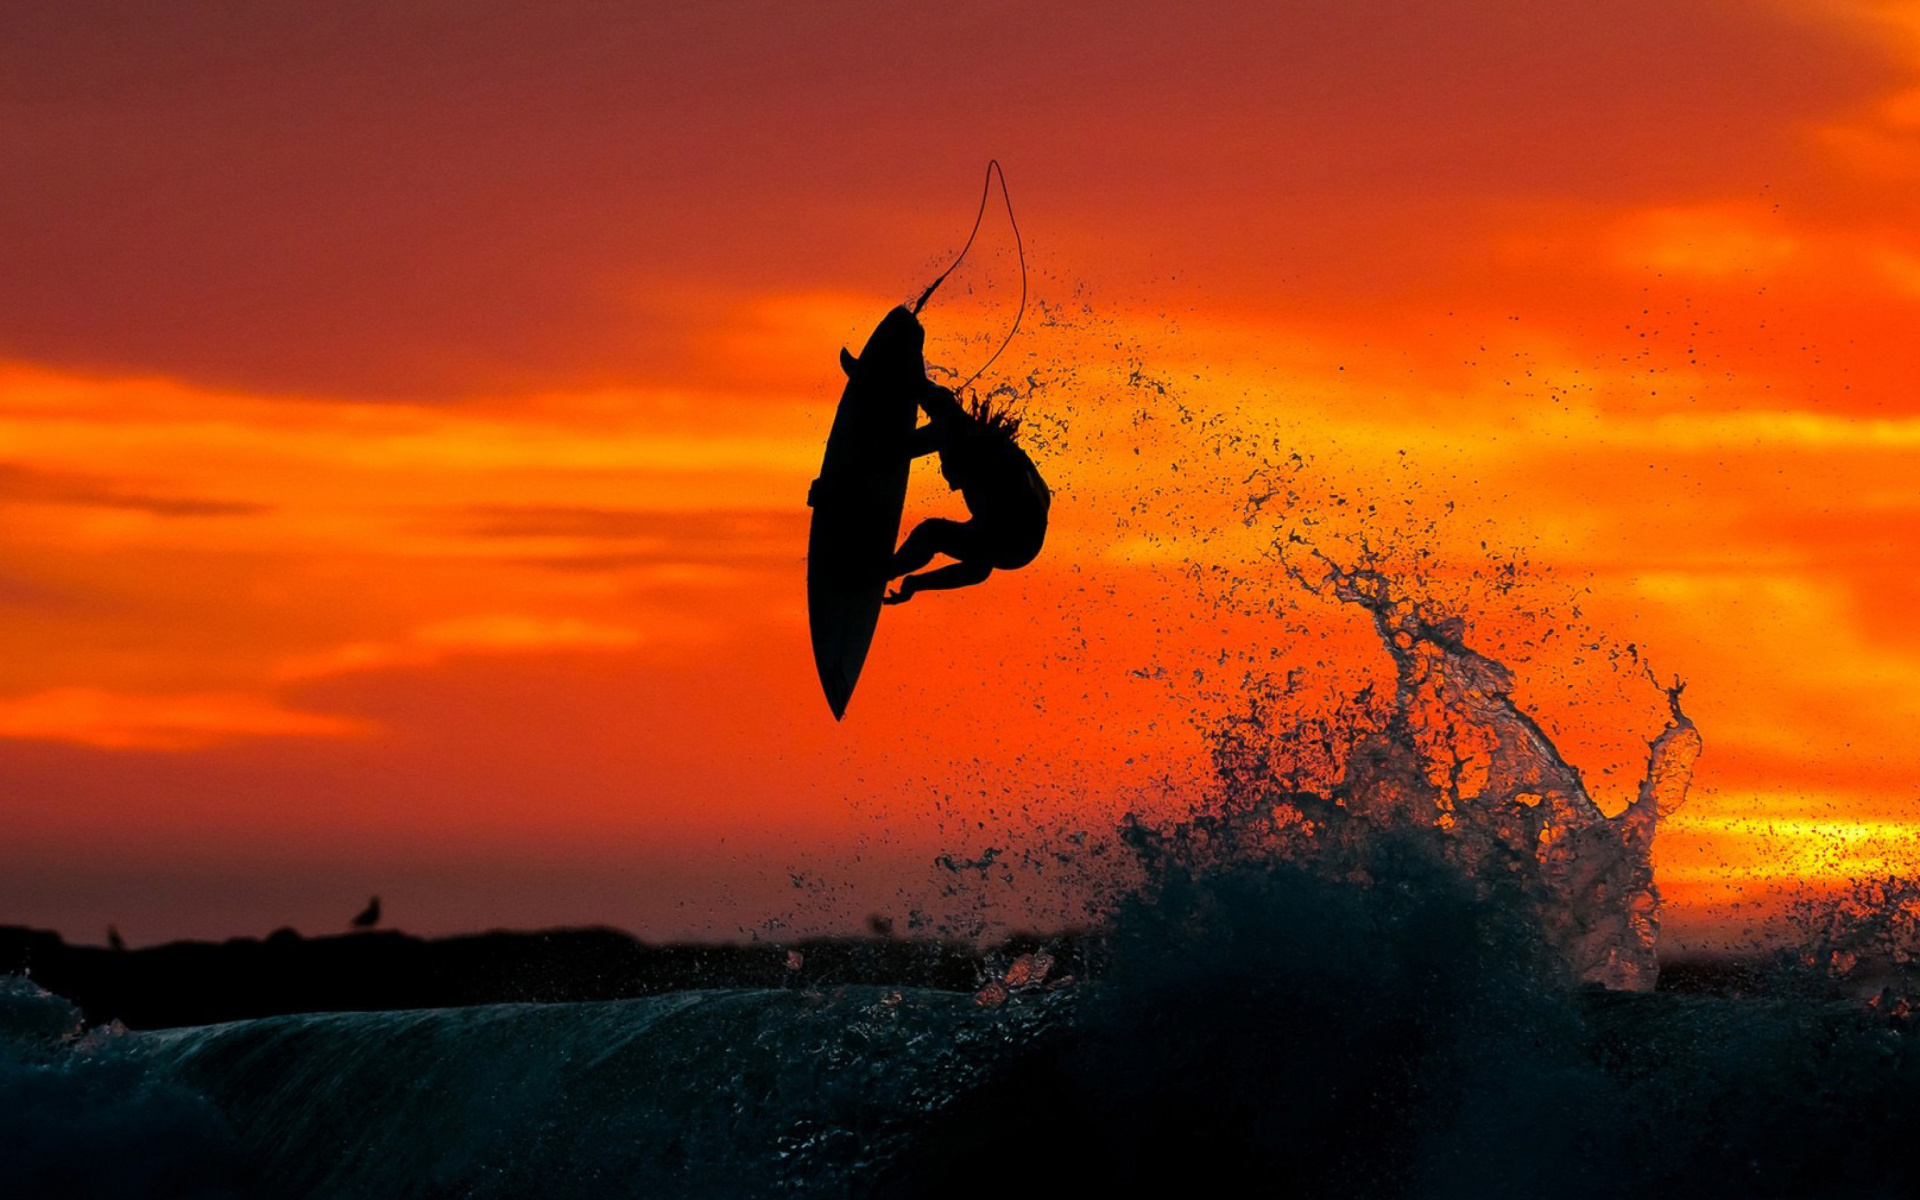 Extreme Wallpaper 1920x1080: Extreme Surfing Wallpaper For Widescreen Desktop PC